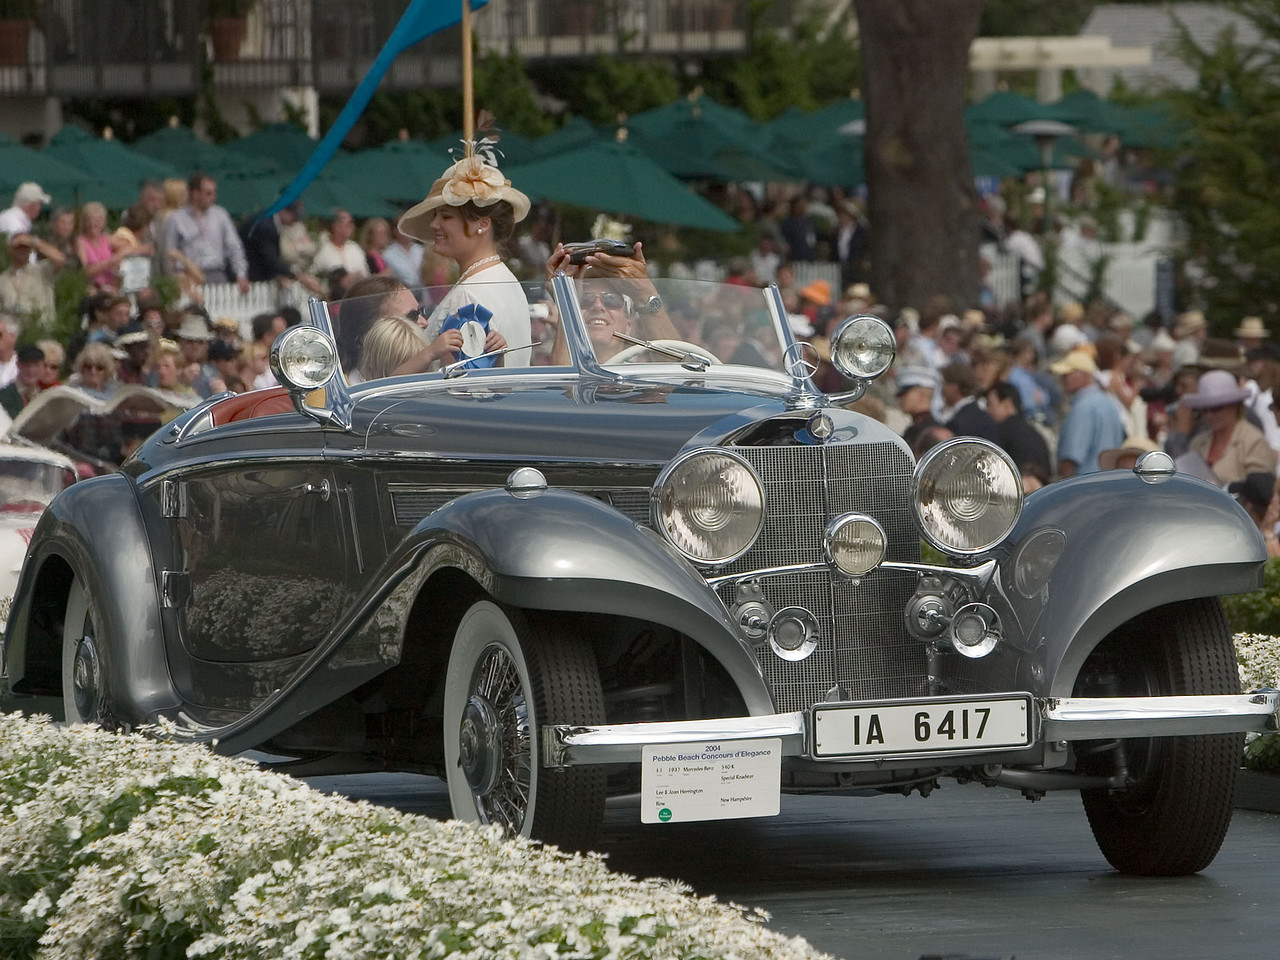 1937 Mercedes-Benz 540 K Special Roadster.